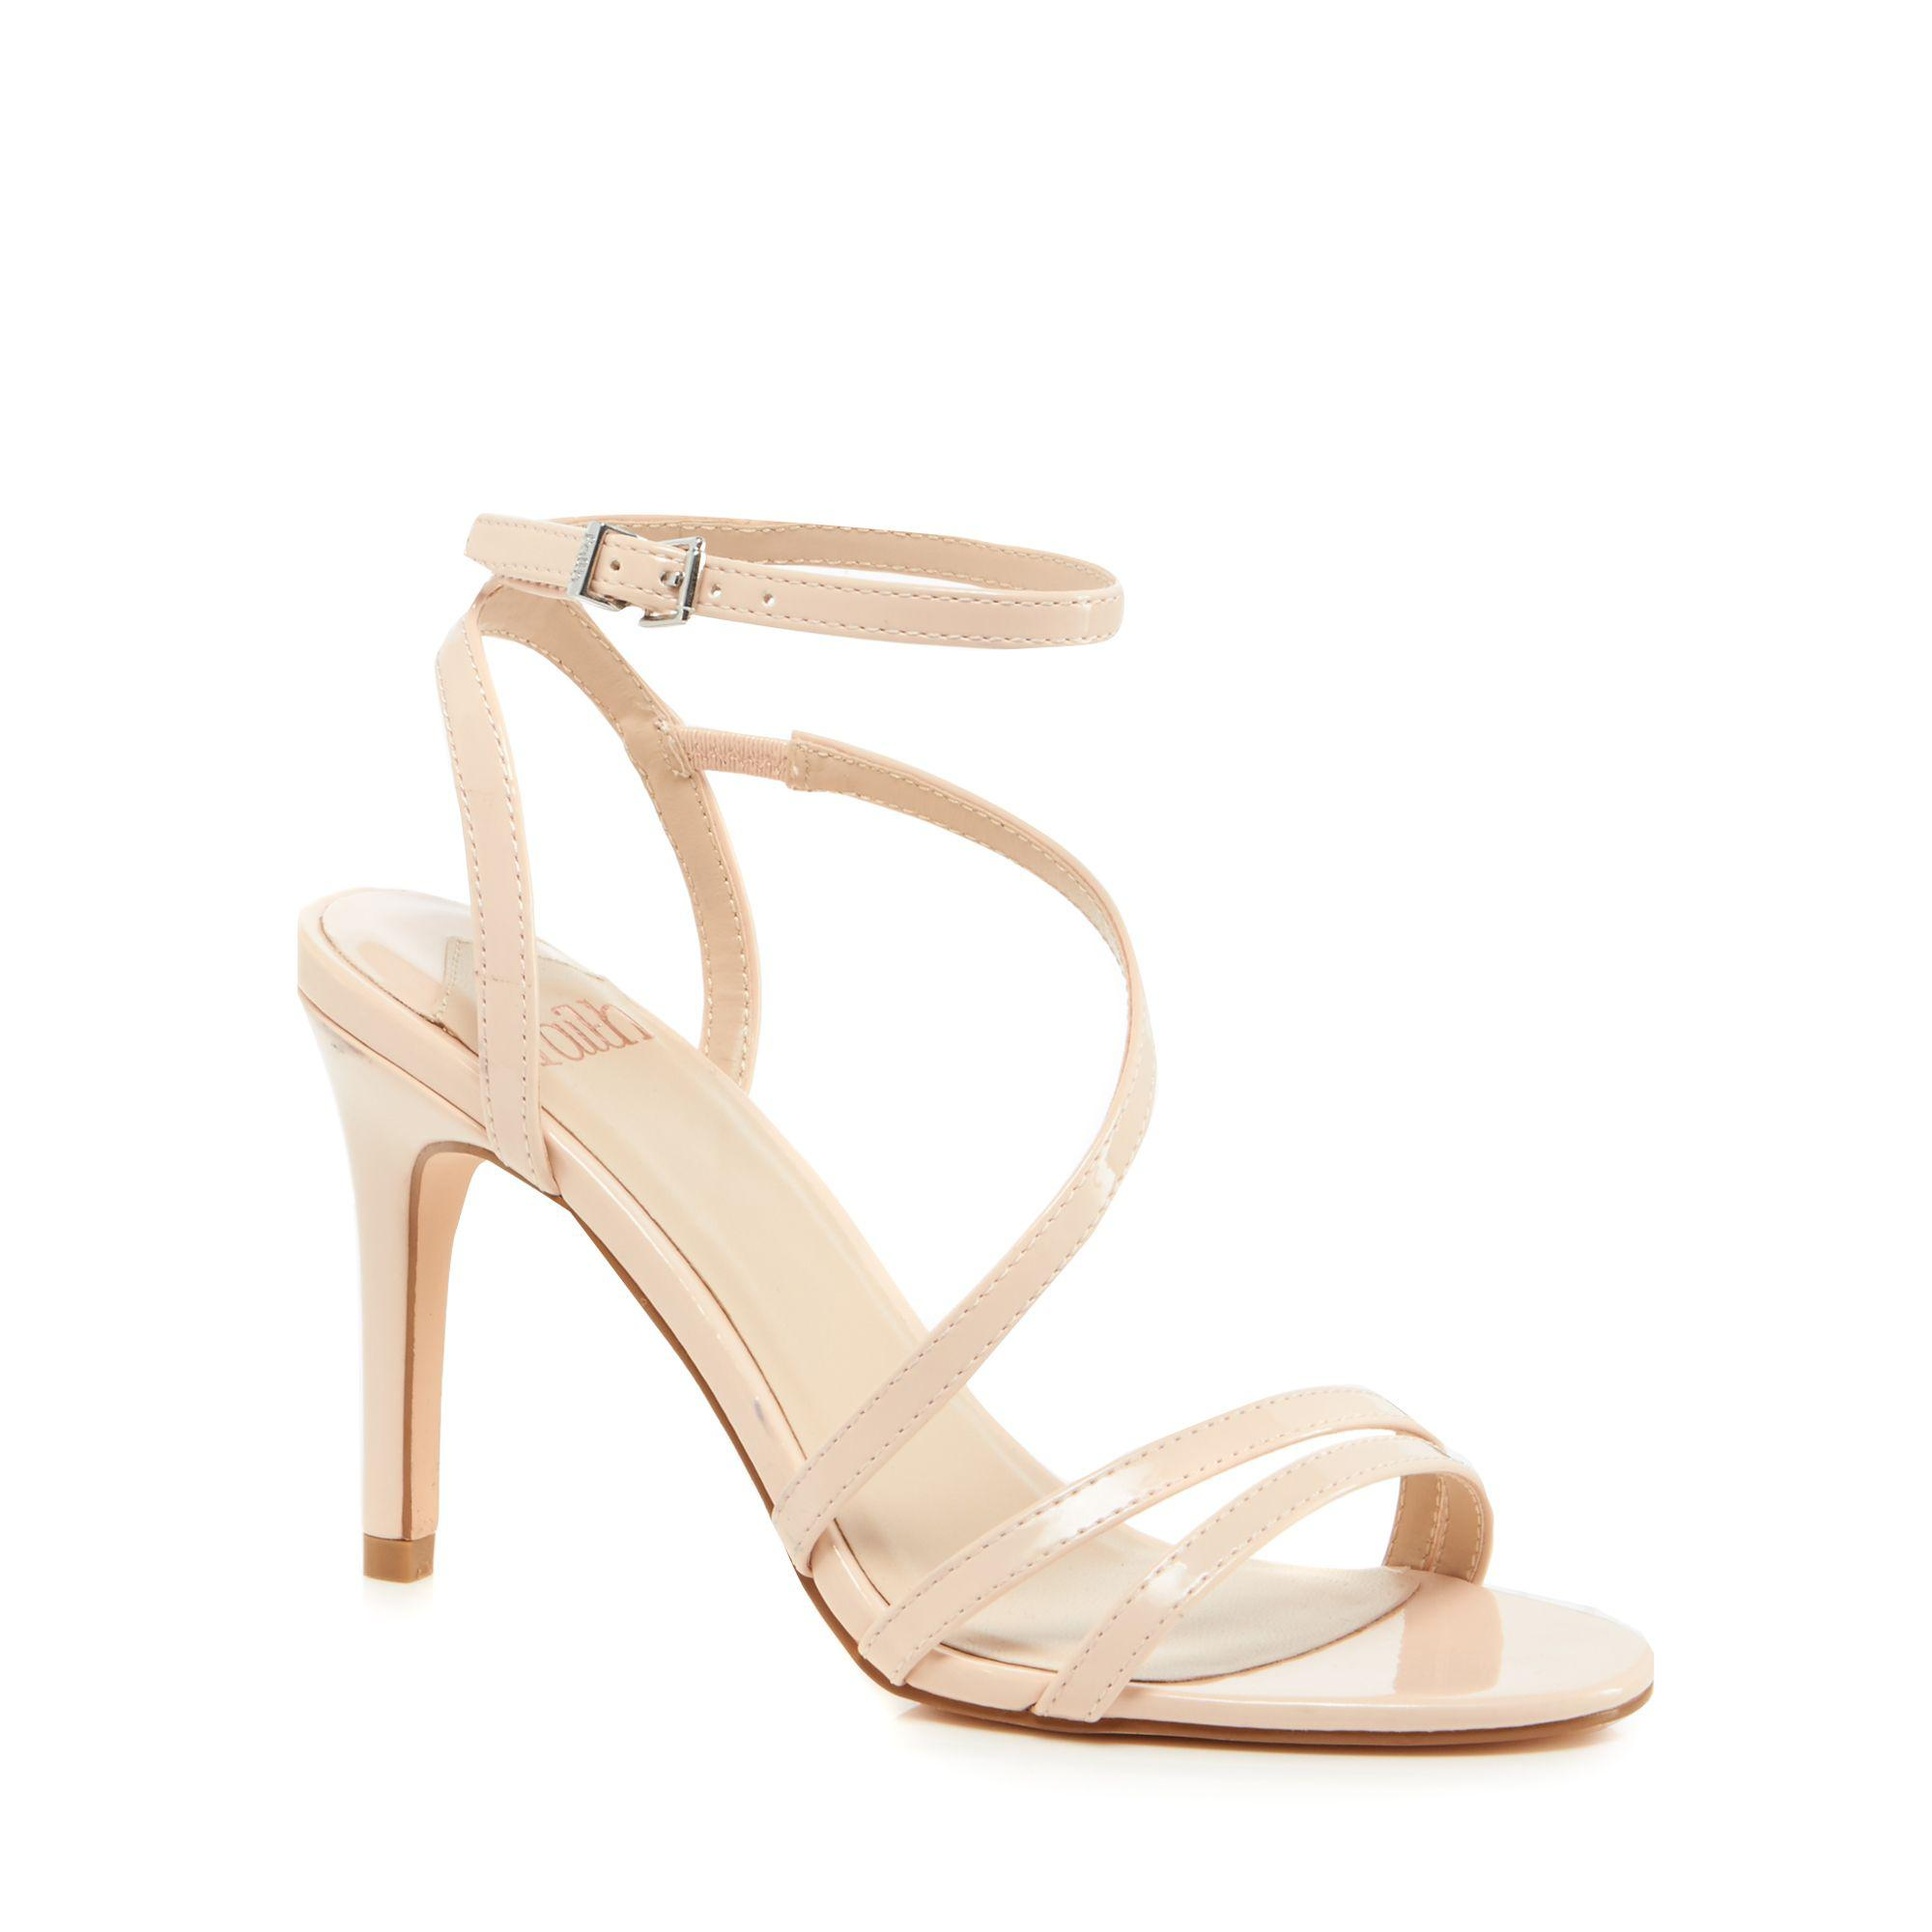 ab4540d0bb6 Faith - Natural Pale Pink Patent  delly  High Stiletto Heel Ankle Strap  Sandals -. View fullscreen